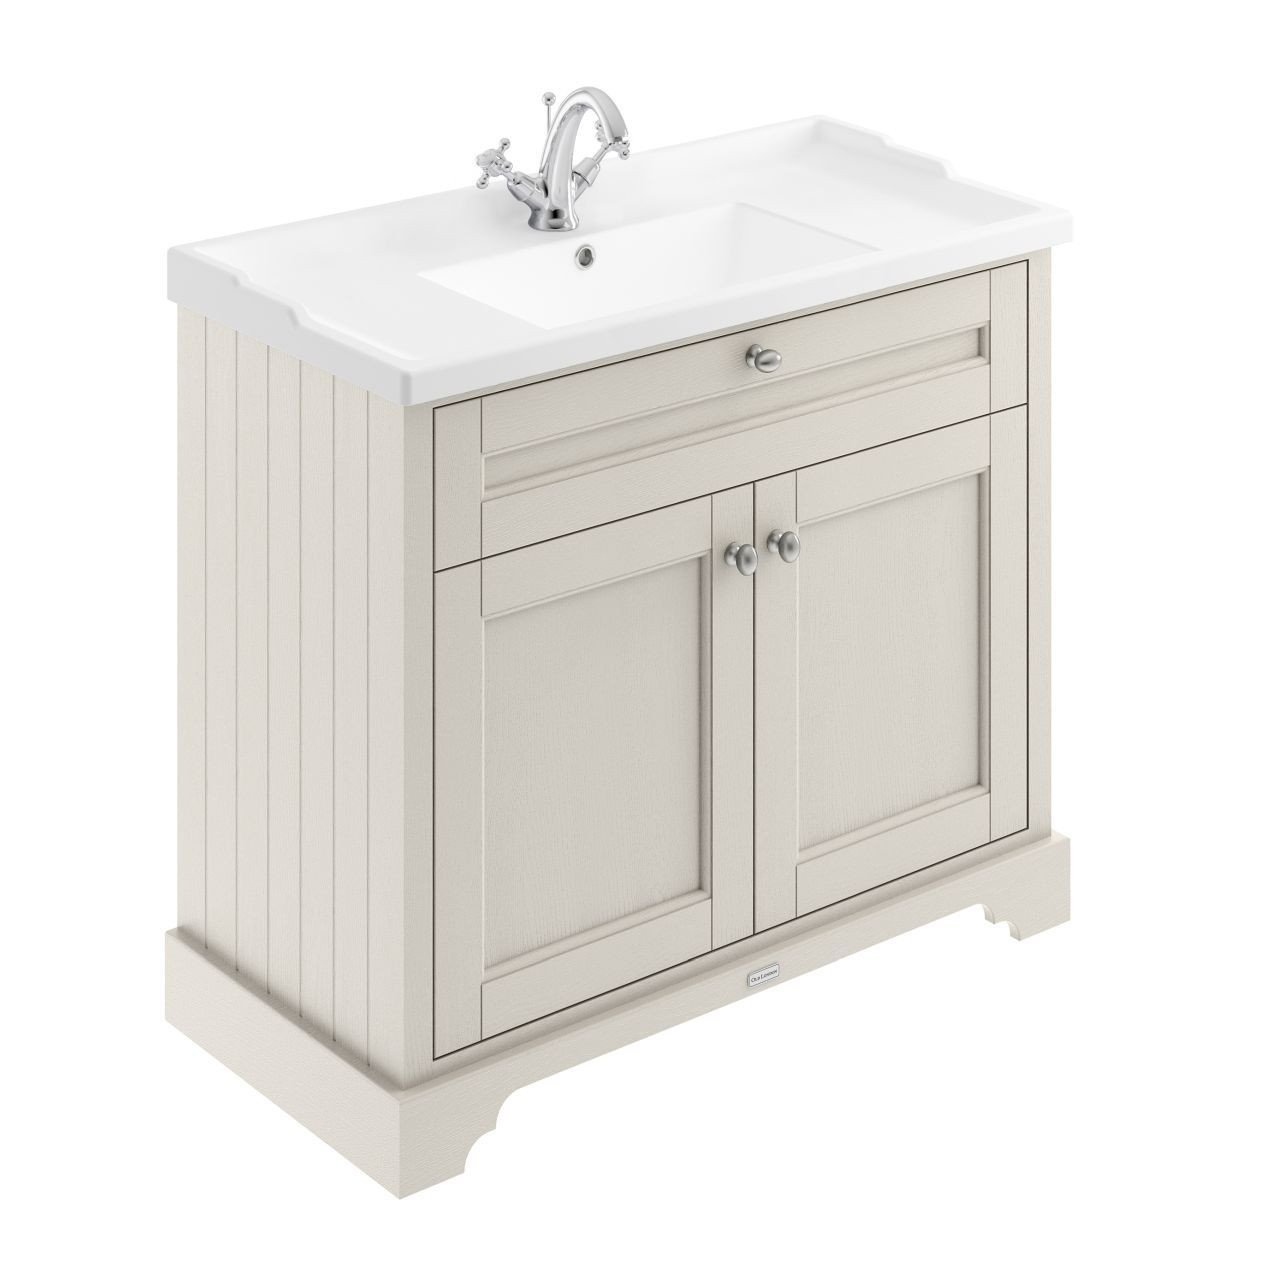 Old London Timeless Sand 1000mm 2 Door Vanity Unit and Basin with 1 Tap Hole - LOF407